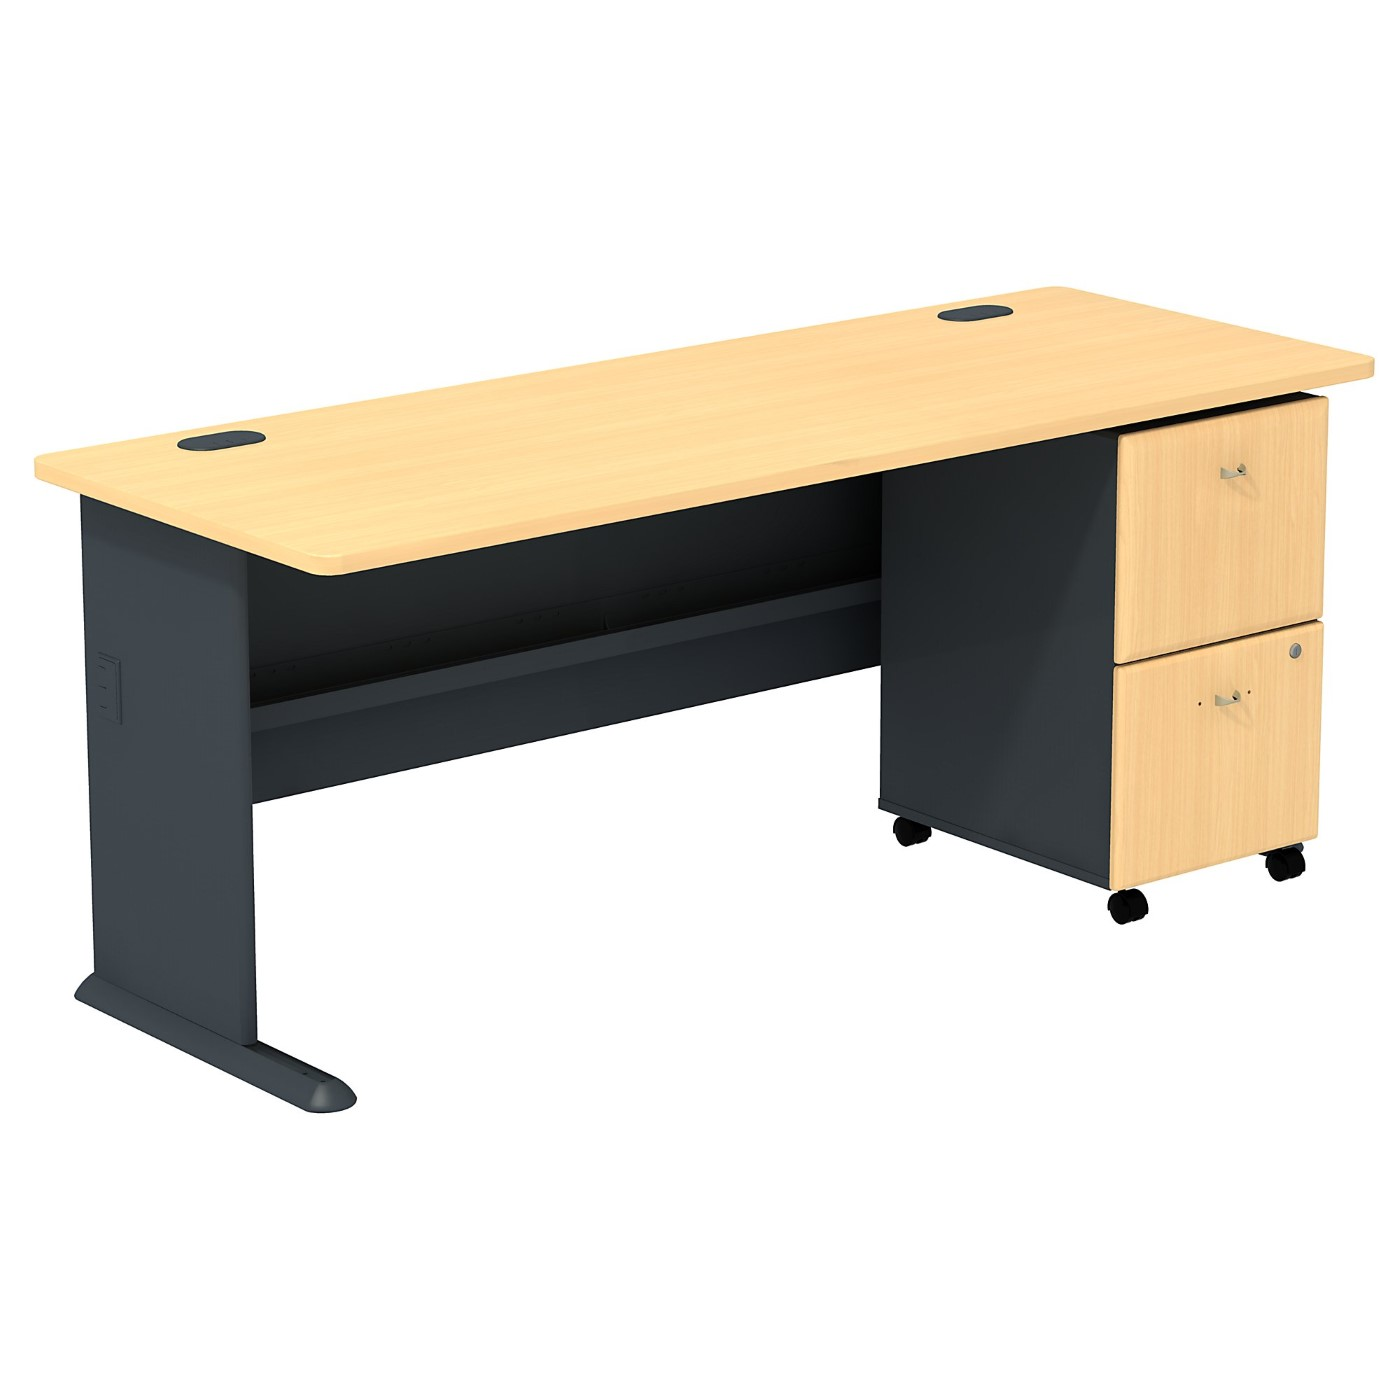 BUSH BUSINESS FURNITURE SERIES A DESK WITH 2 DRAWER MOBILE PEDESTAL. FREE SHIPPING SALE DEDUCT 10% MORE ENTER '10percent' IN COUPON CODE BOX WHILE CHECKING OUT.